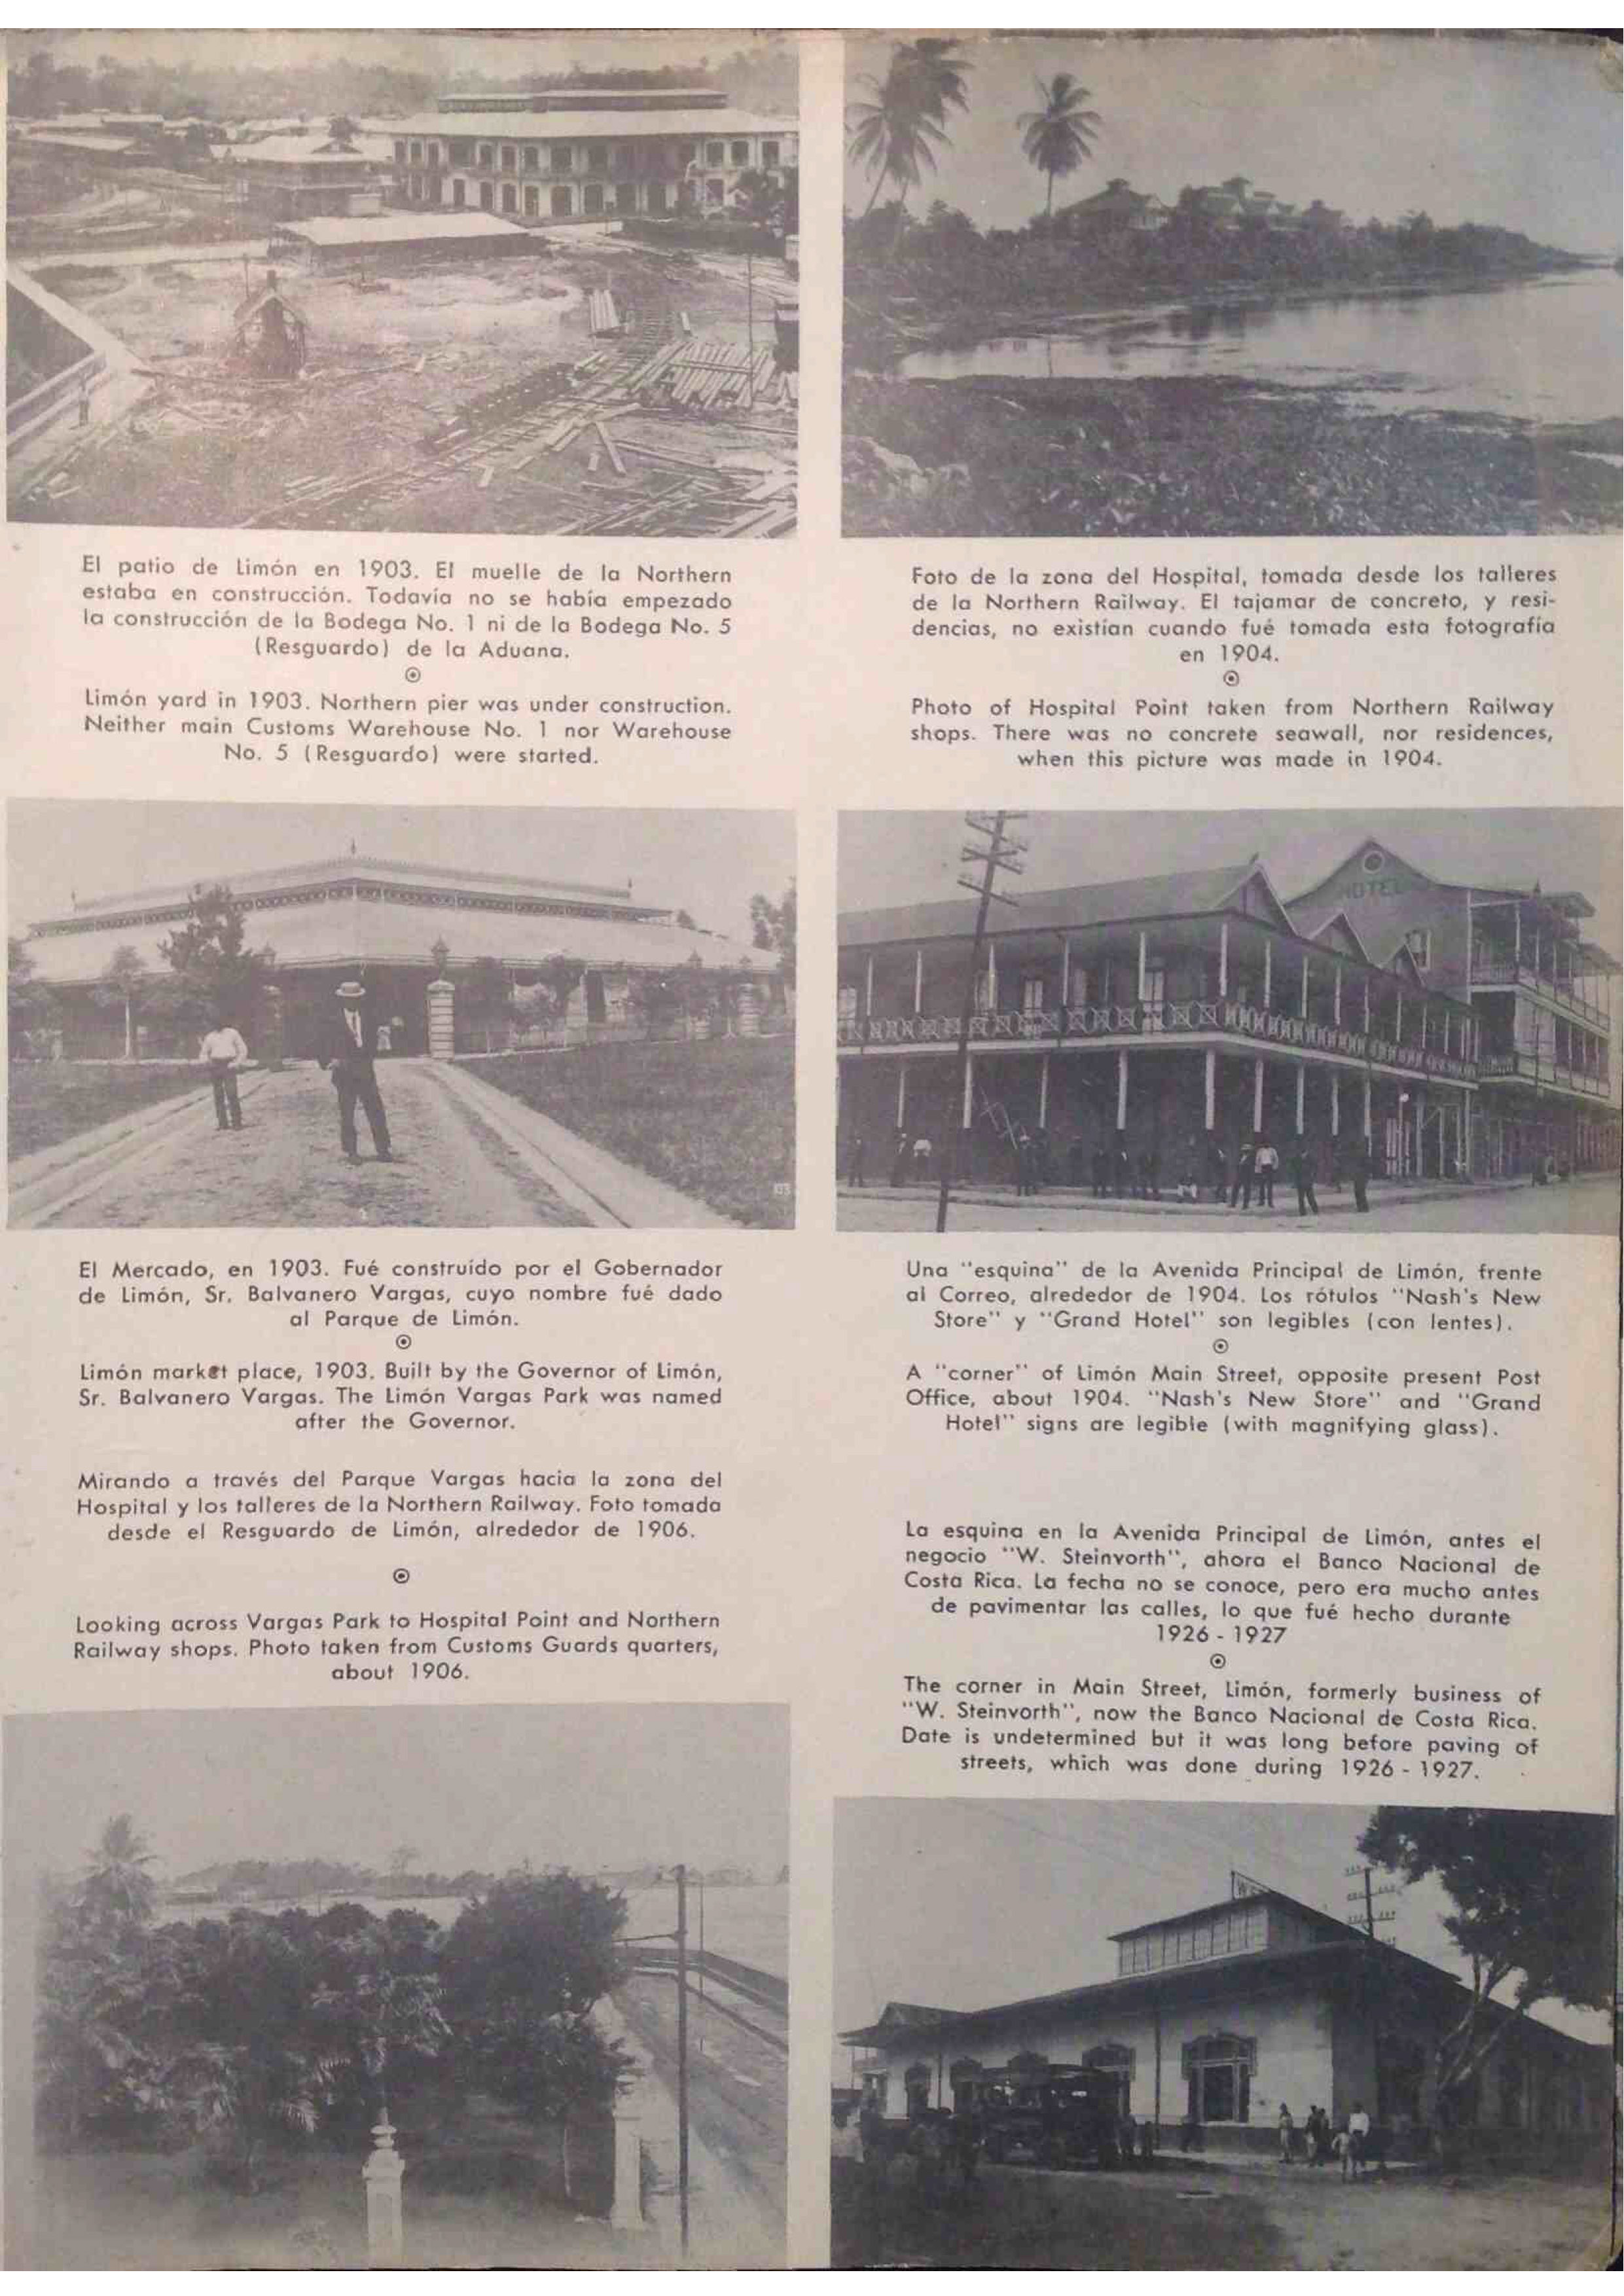 Costa Rica railway co 1953 from Davila fam partial scan_Page_10.jpg